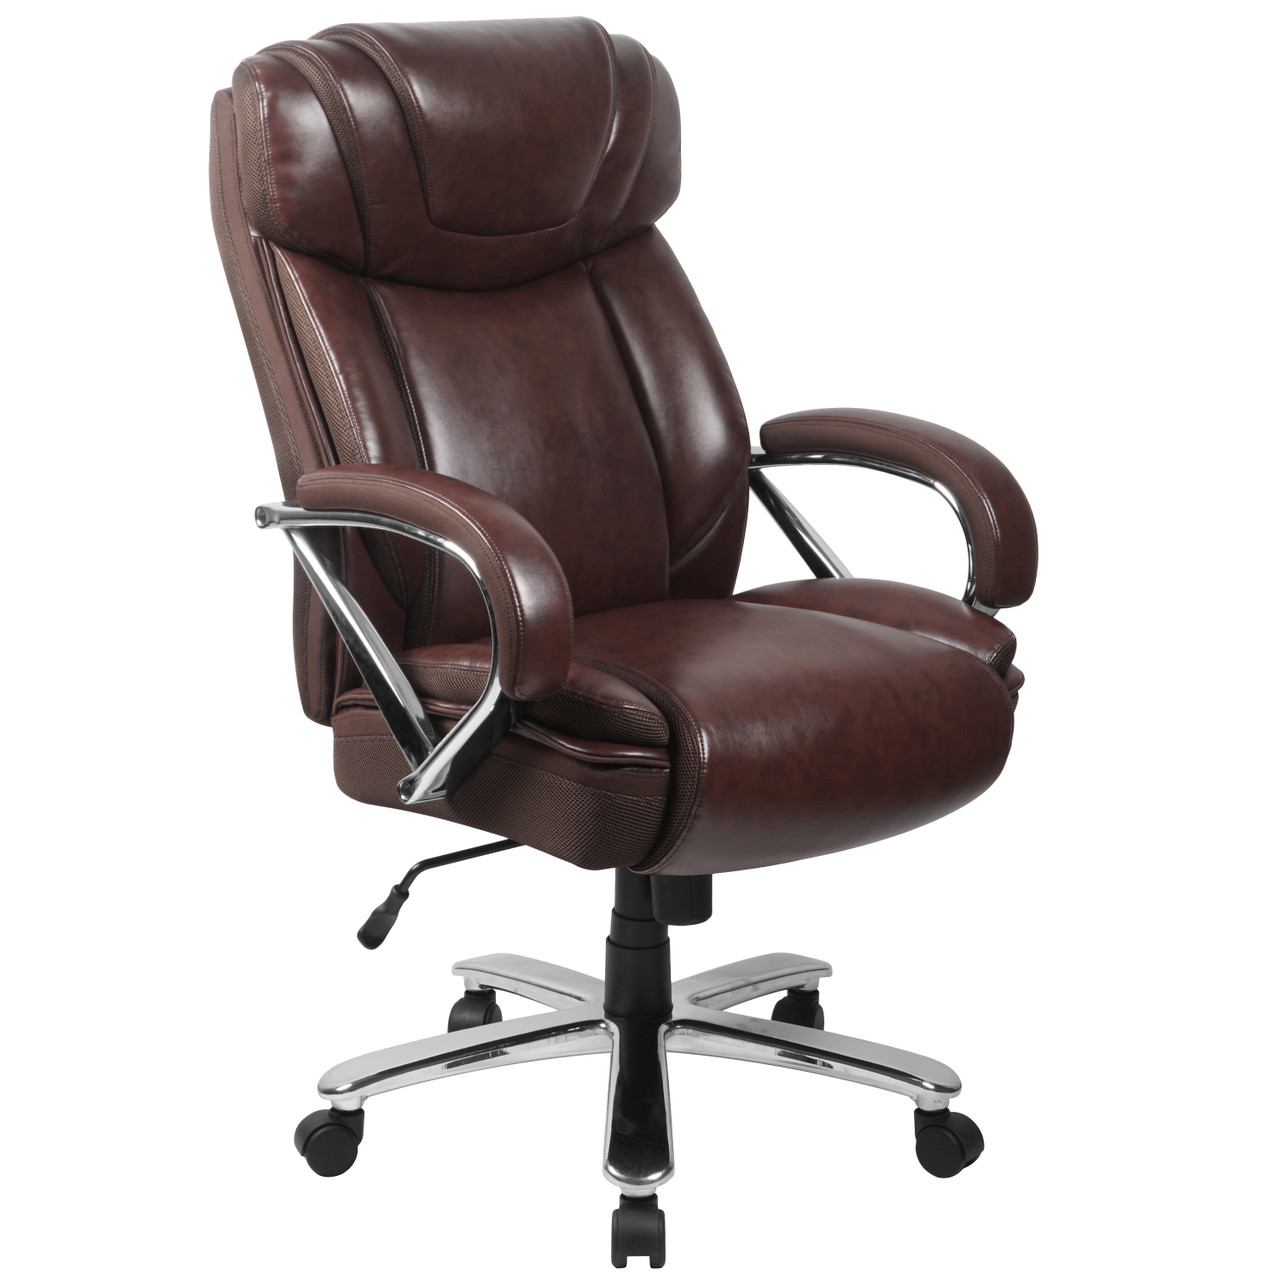 The Big Tall 500 Lb Rated Brown Leather Executive Swivel Ergonomic Office Chair With Extra Wide Seat Available At Acf Wholesale Serving Columbus Ms